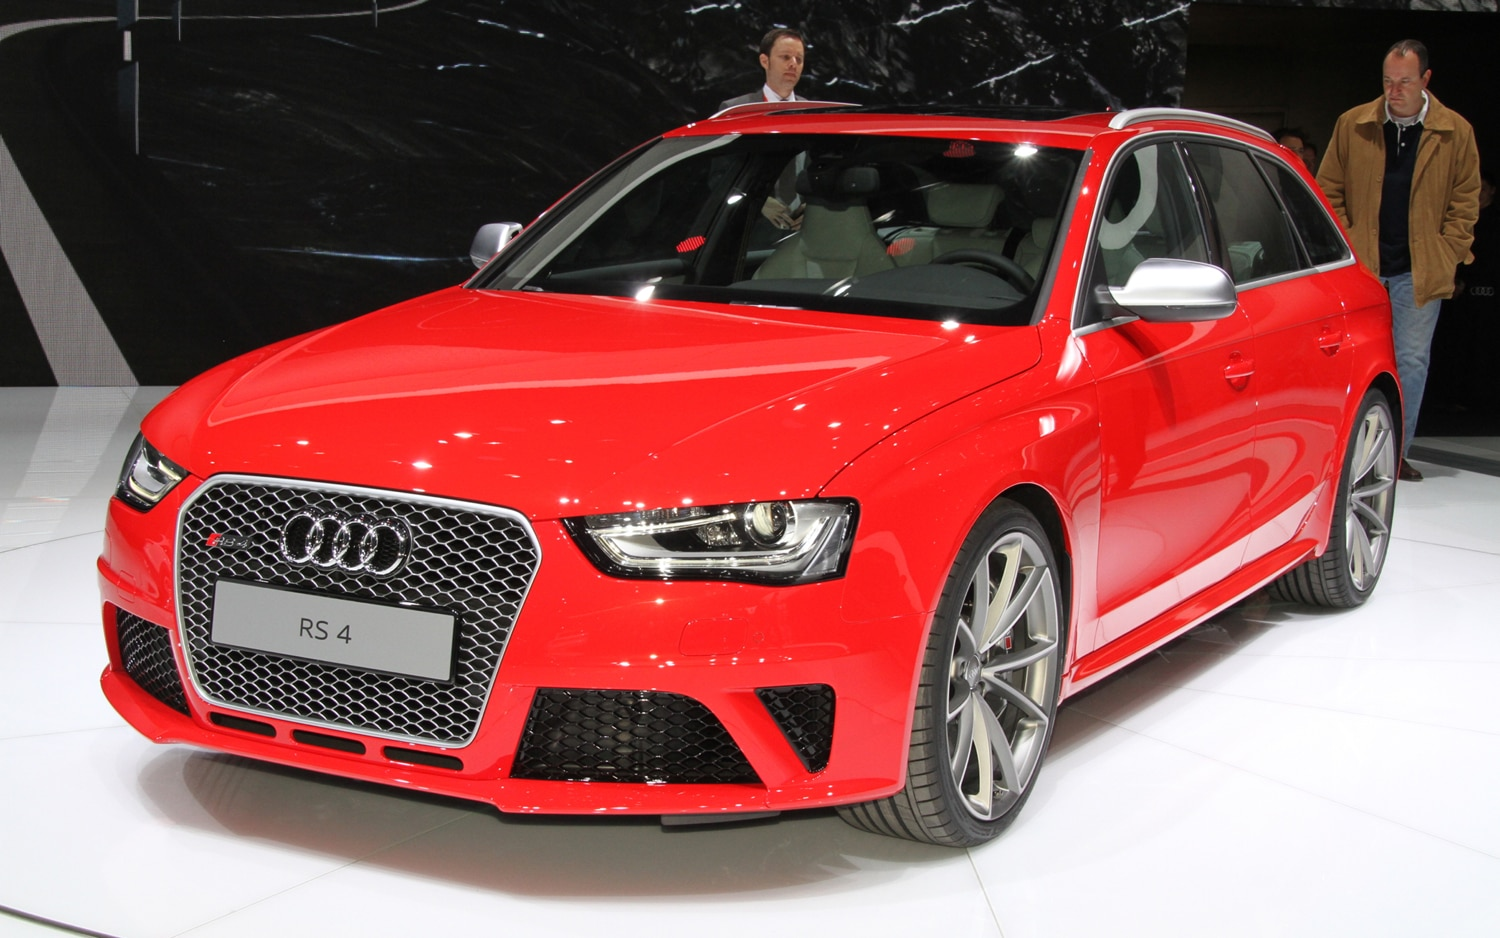 2013 Audi RS4 Avant Front Left View1